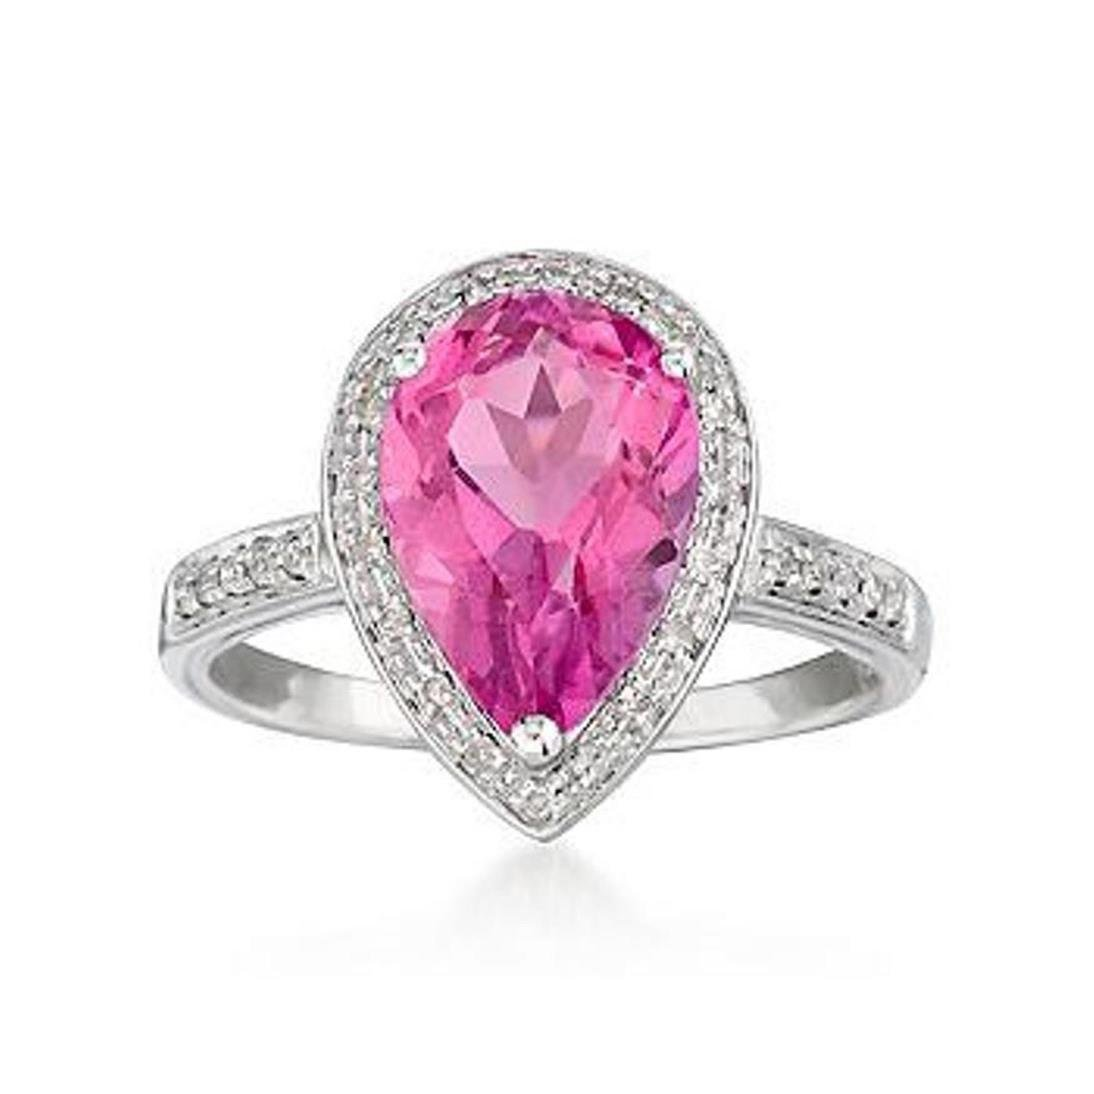 2.50 Carat Pink Topaz Ring With Diamonds in 14kt White